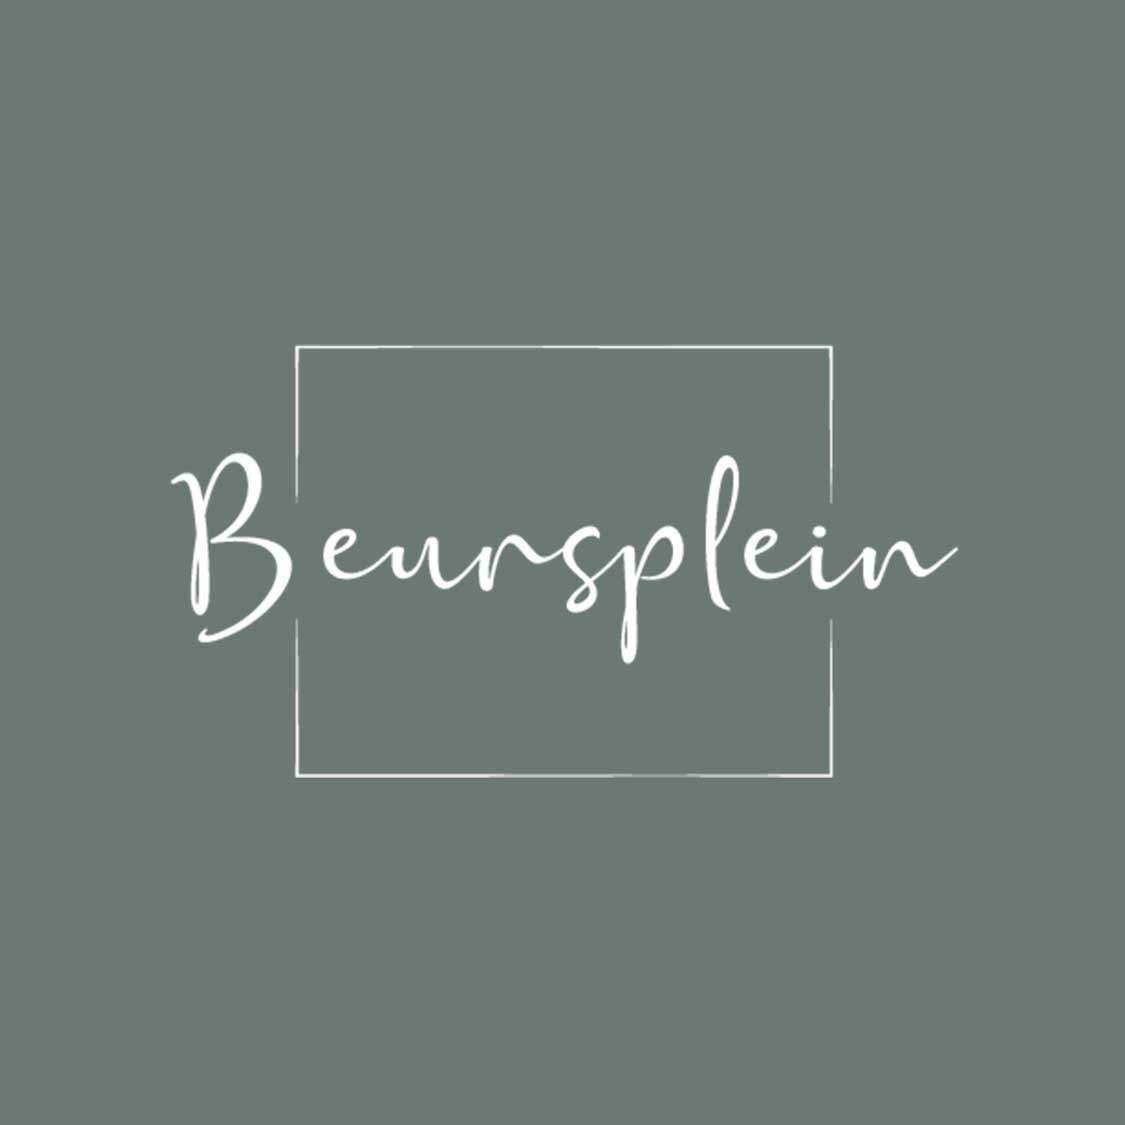 beursplein-online-marketing-bureau-webdevelopment-haarlem-made-marketing-4